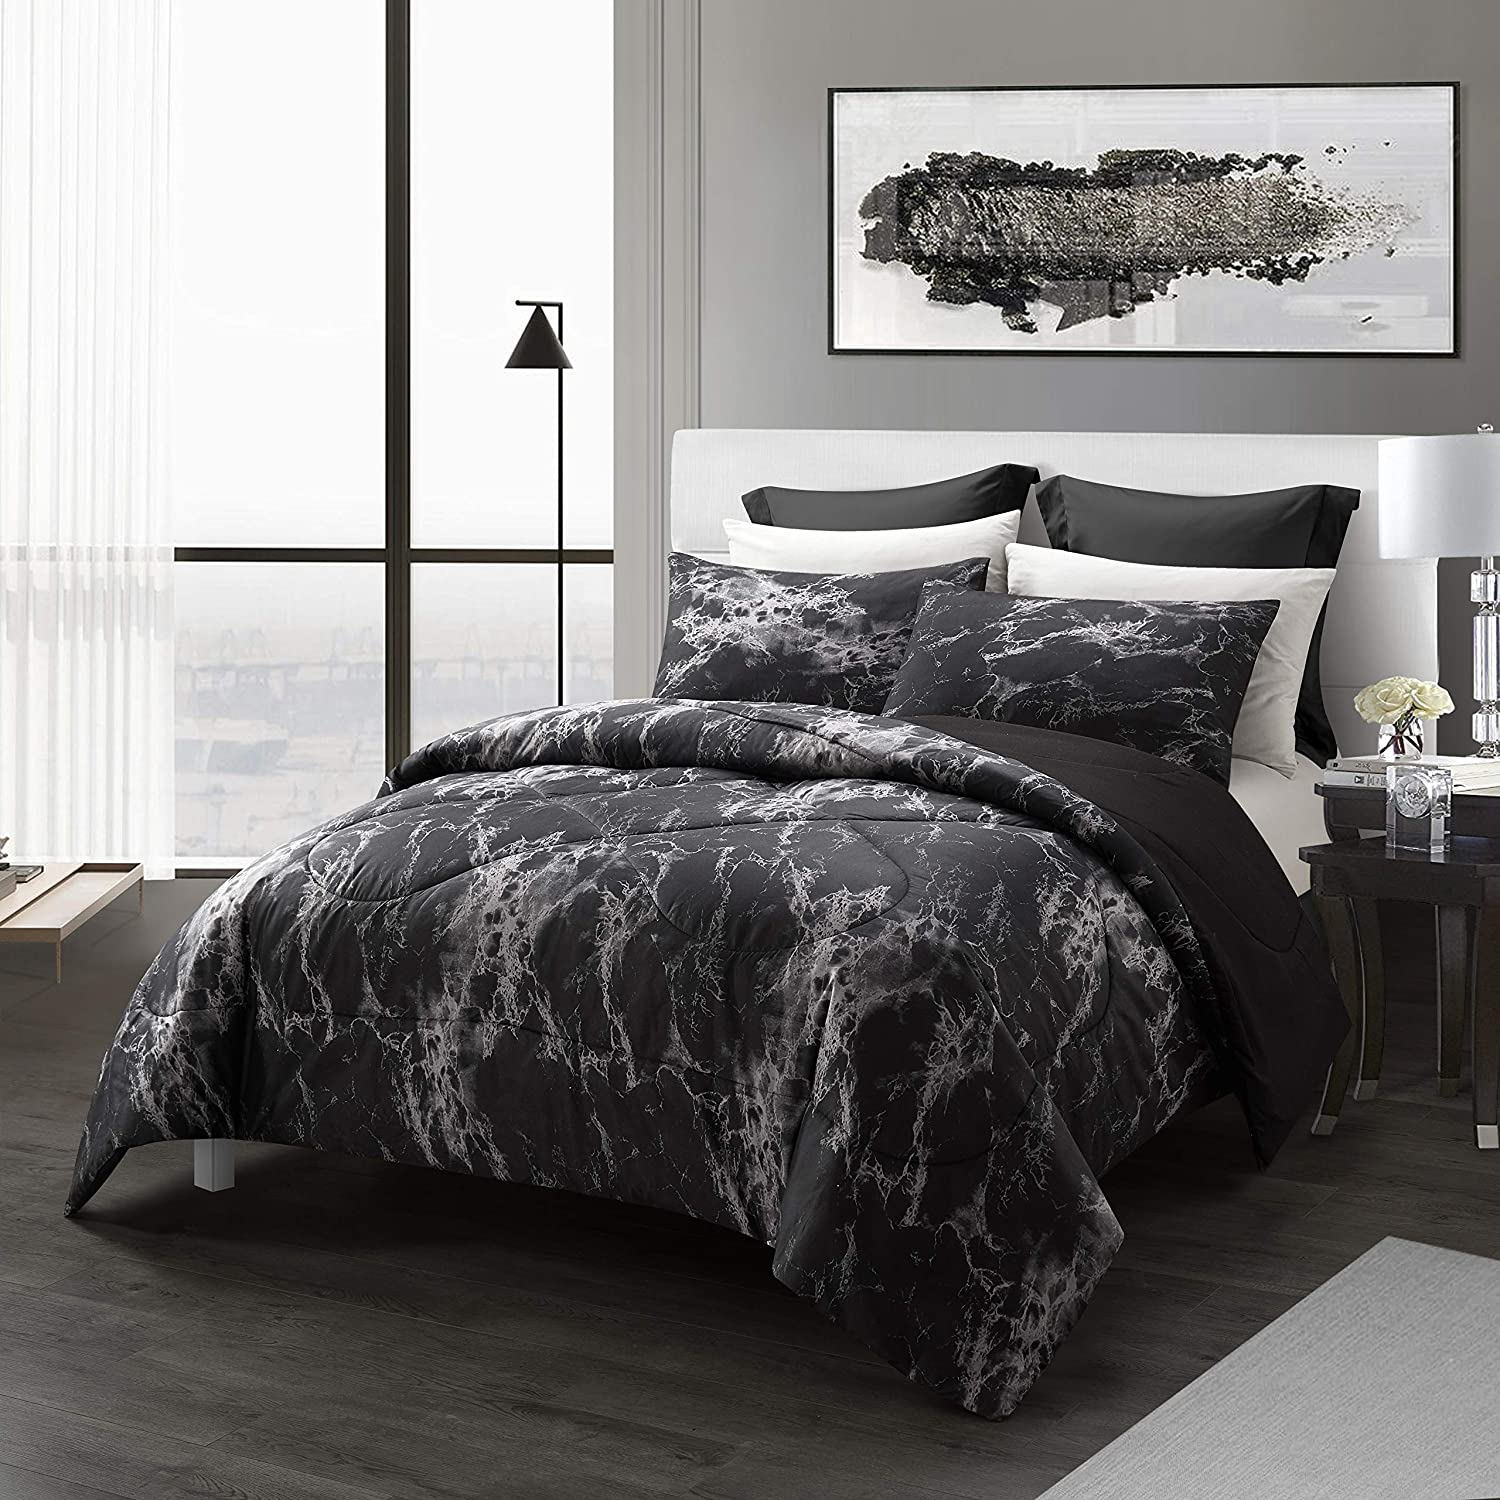 Spring Meow Marble Comforter Set Queen Dow Soft Sets Popular popular Miami Mall